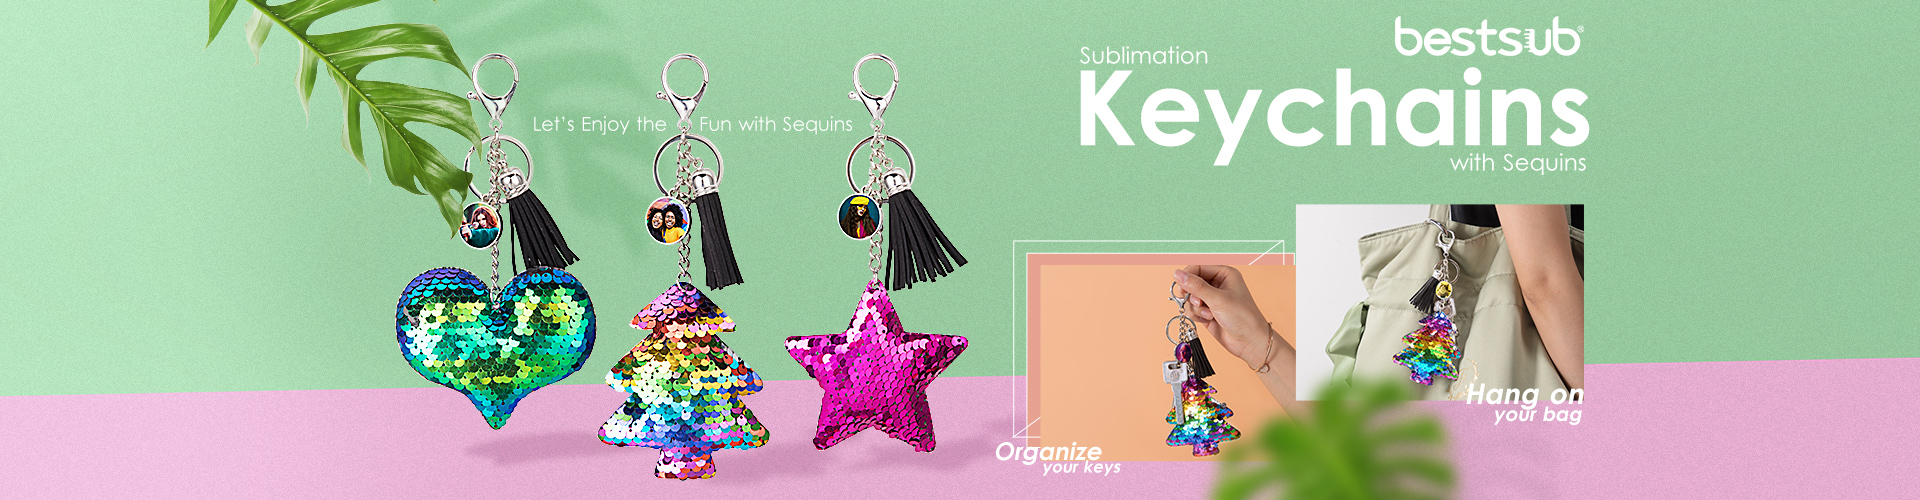 2019-6-19_Sublimation_Keychains_with_Sequins_new_web